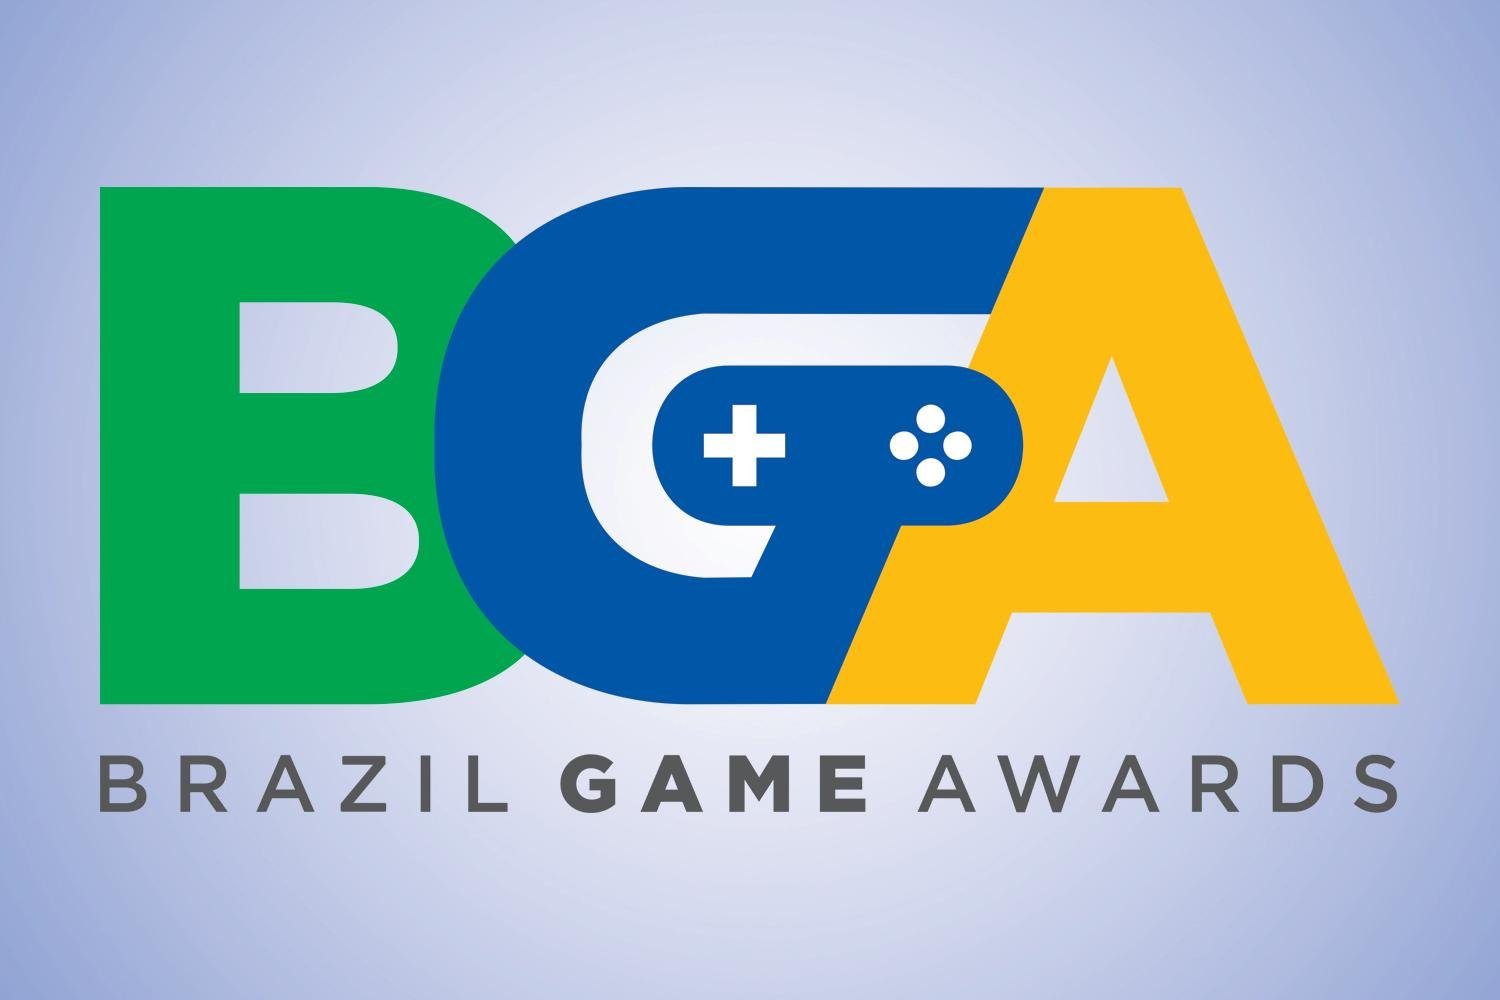 Confira os vencedores do Brazil Game Awards 2018